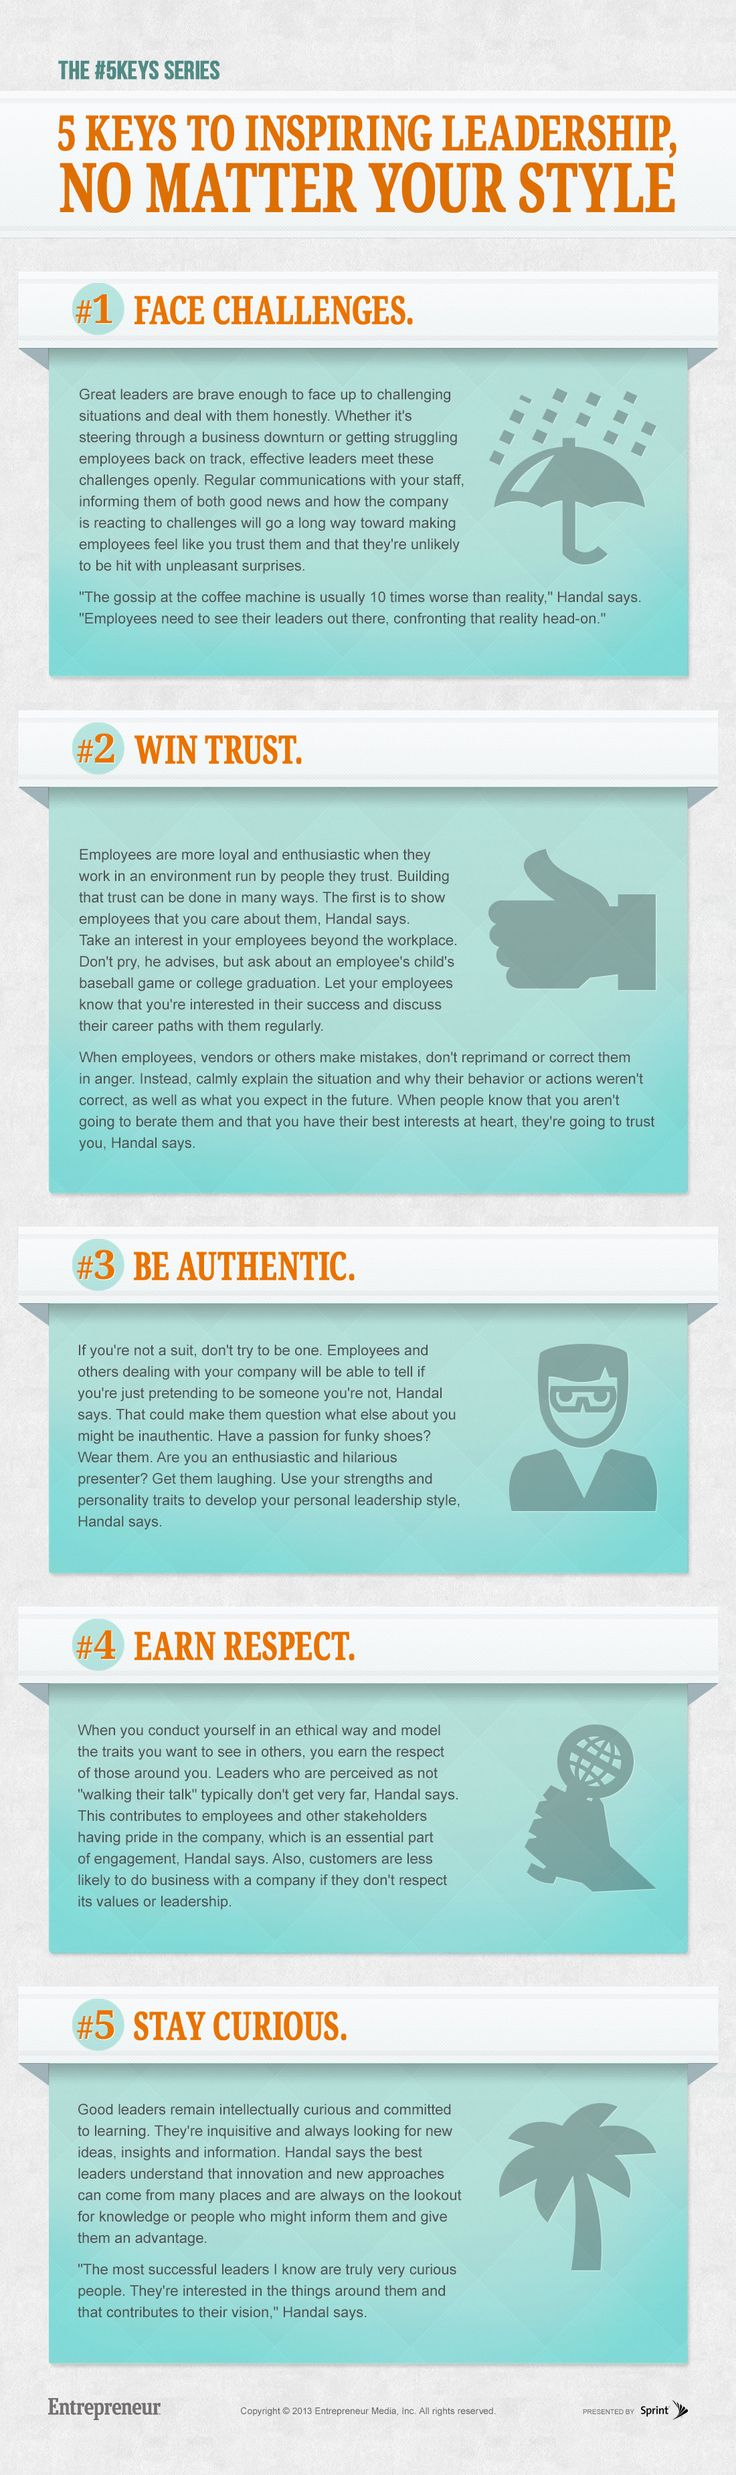 5 Keys to Inspiring Leadership, No Matter Your Style (Infographic) #albertobokos